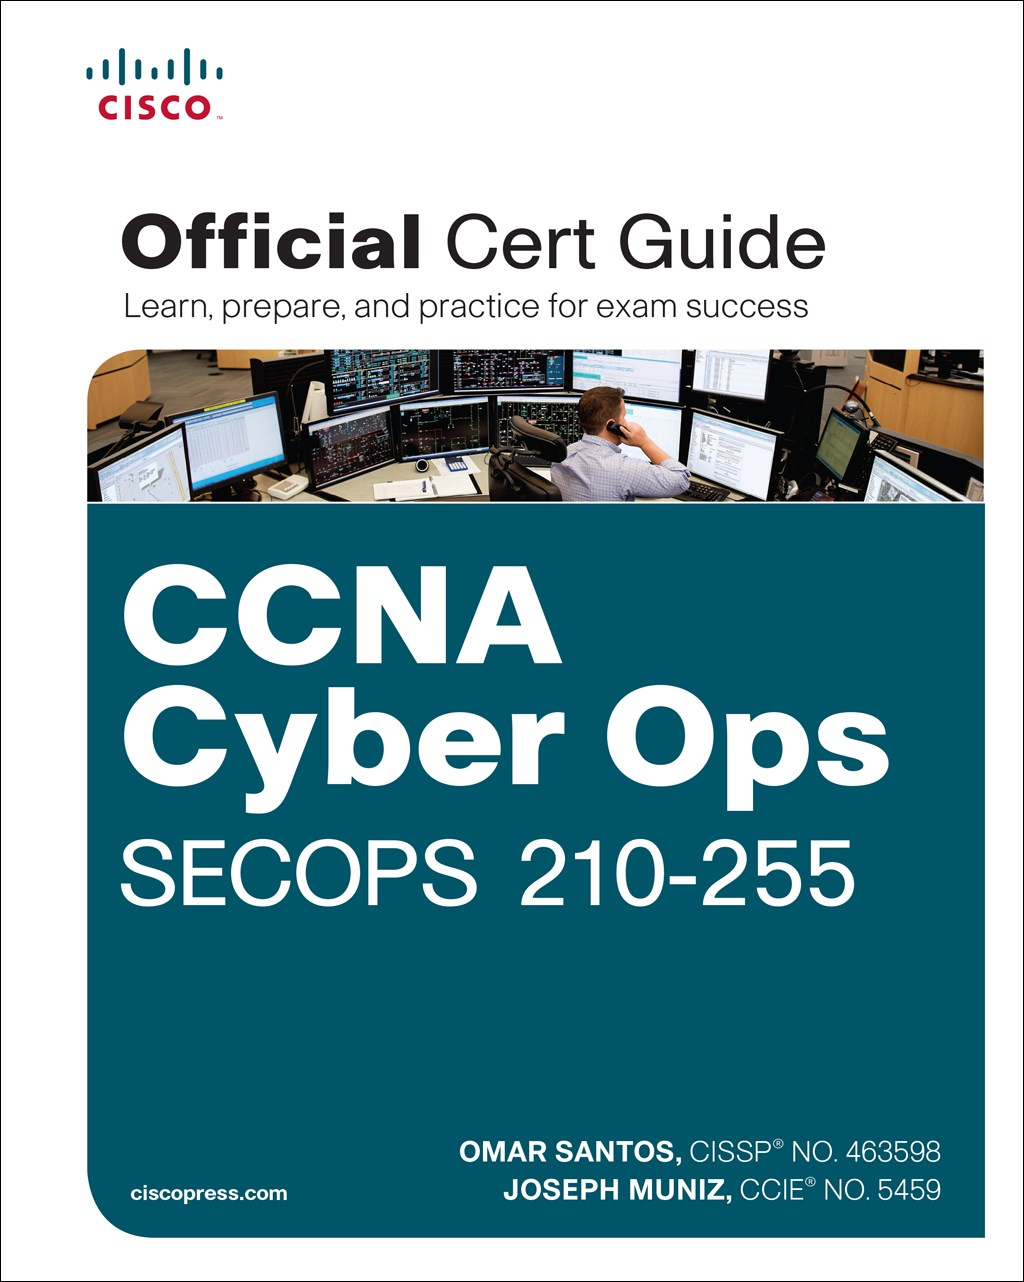 Ccna Cyber Ops Training Cisco Certification Cisco Press